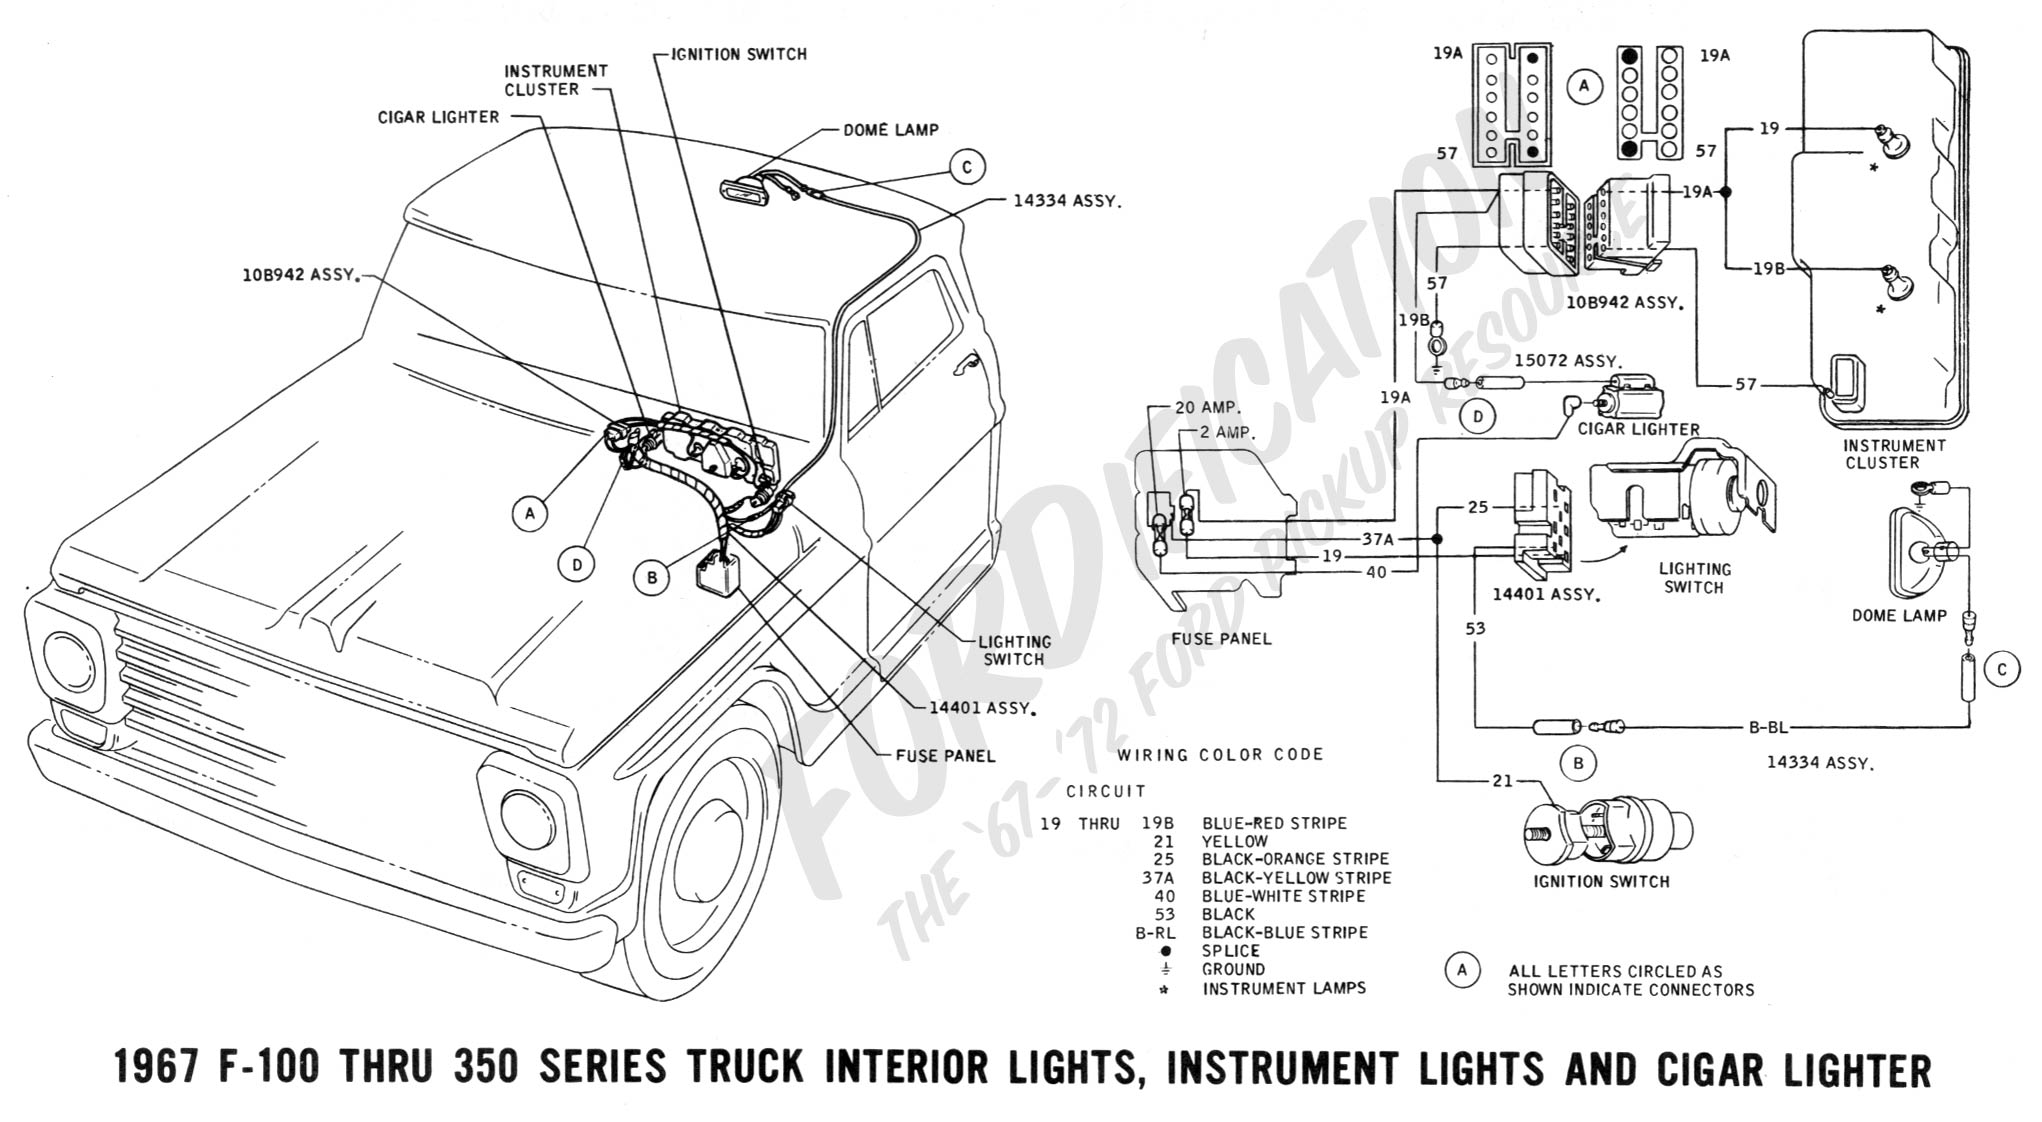 wiring 1967interiorlights wiring diagram for 6 4 ford wipers ford 4 6 engine swap wiring Chevrolet 350 Wiring Diagram at fashall.co